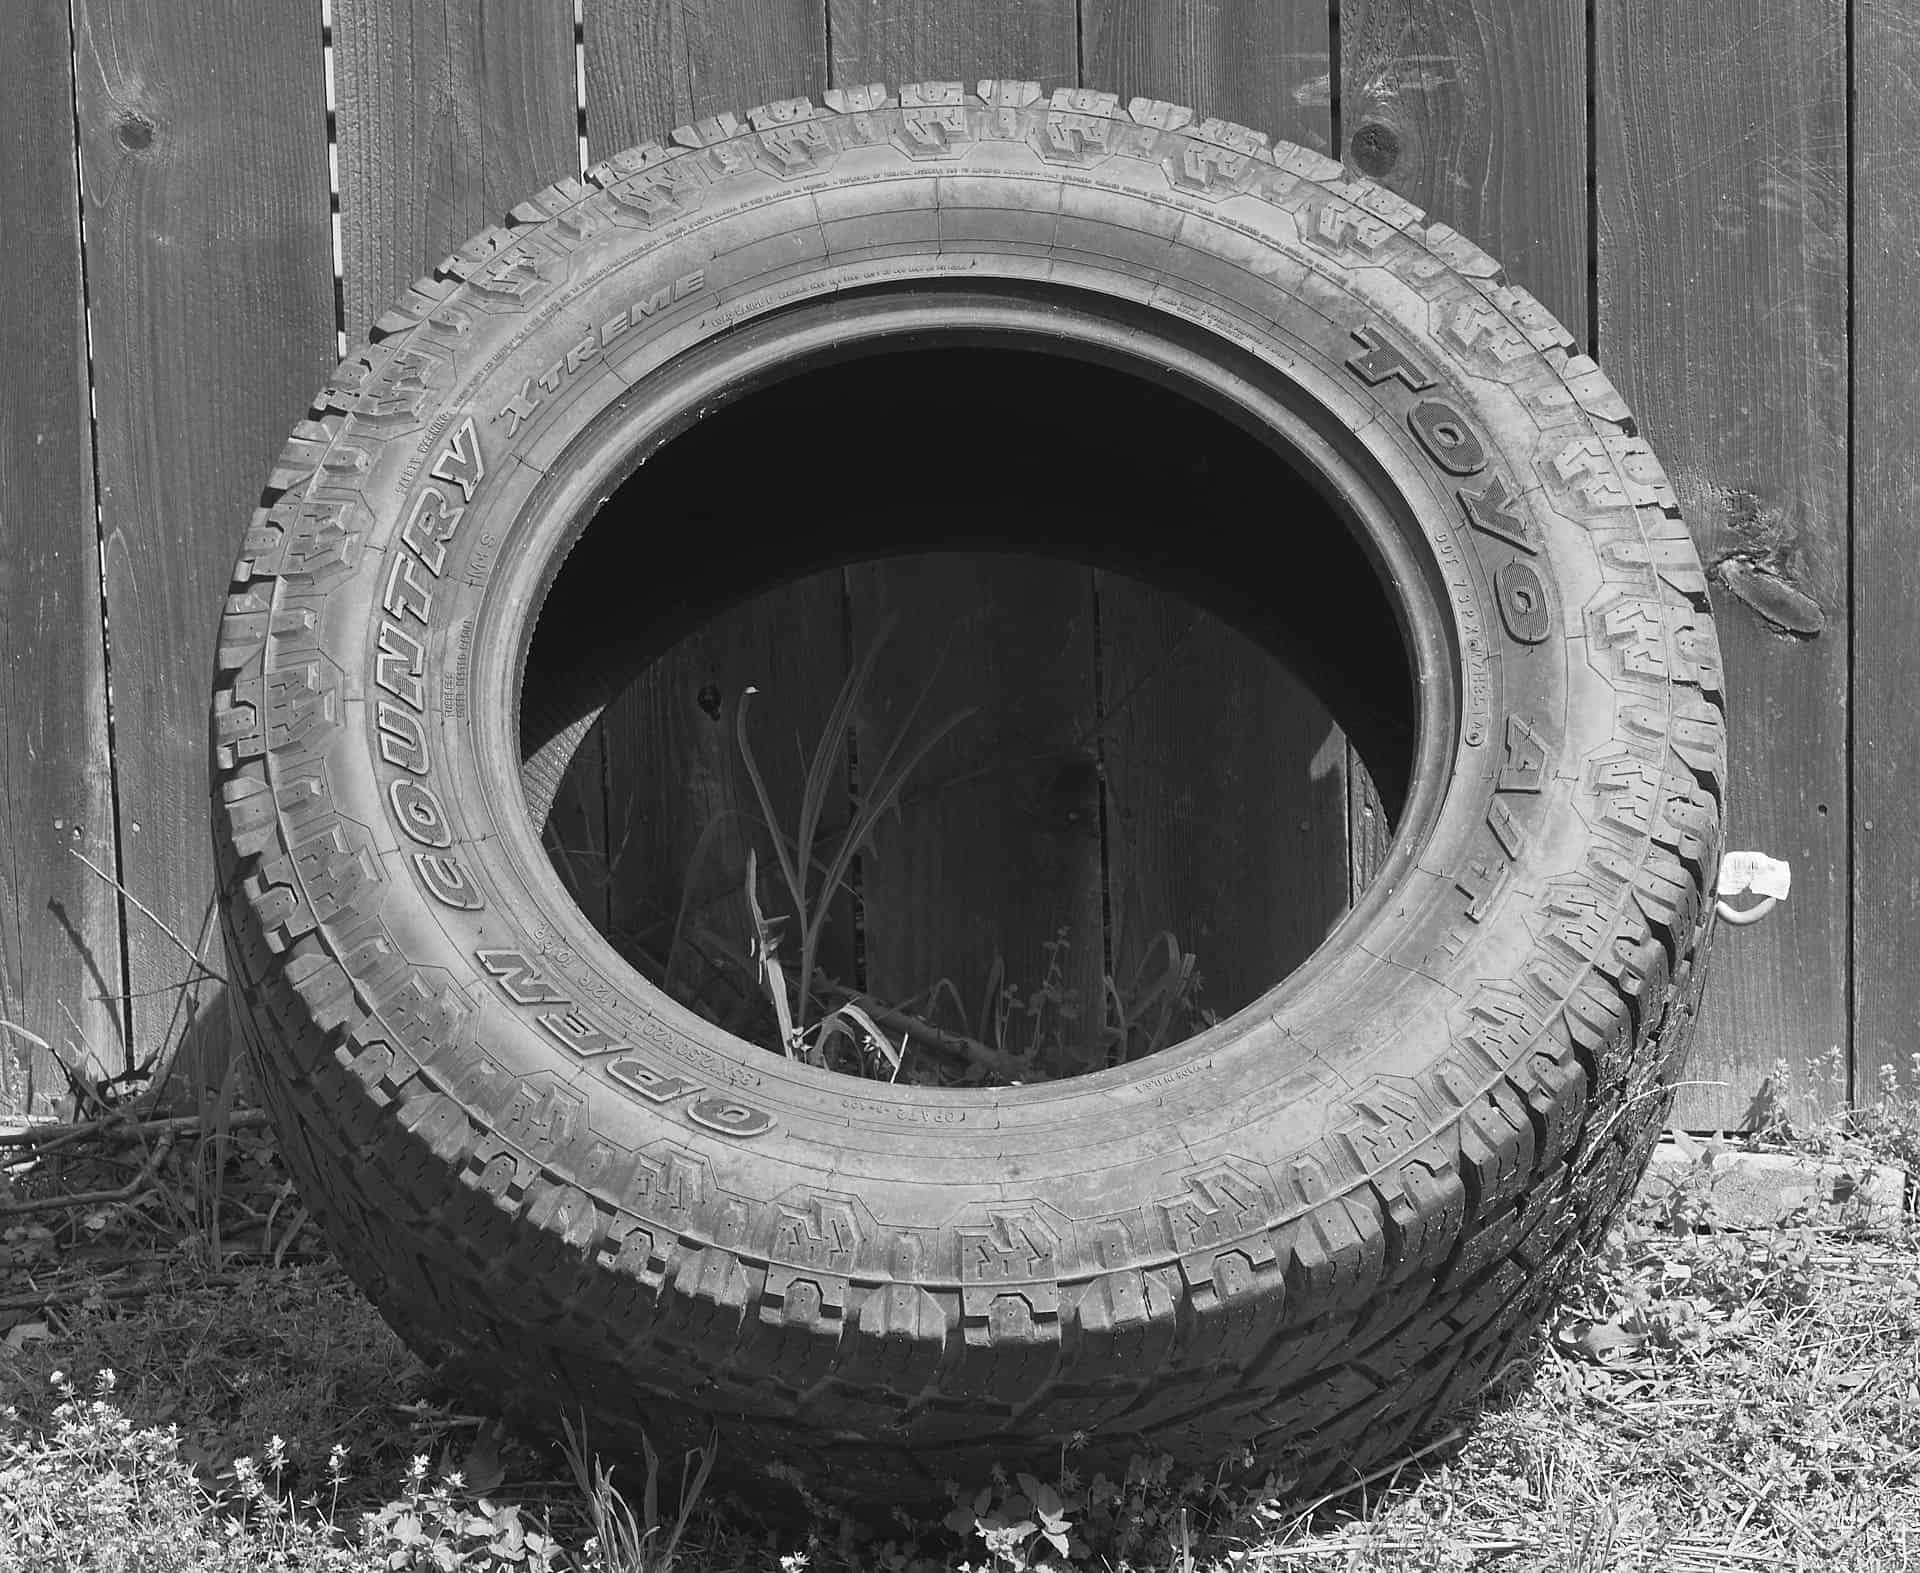 Image of a new tire in an alley with a new bolt inserted